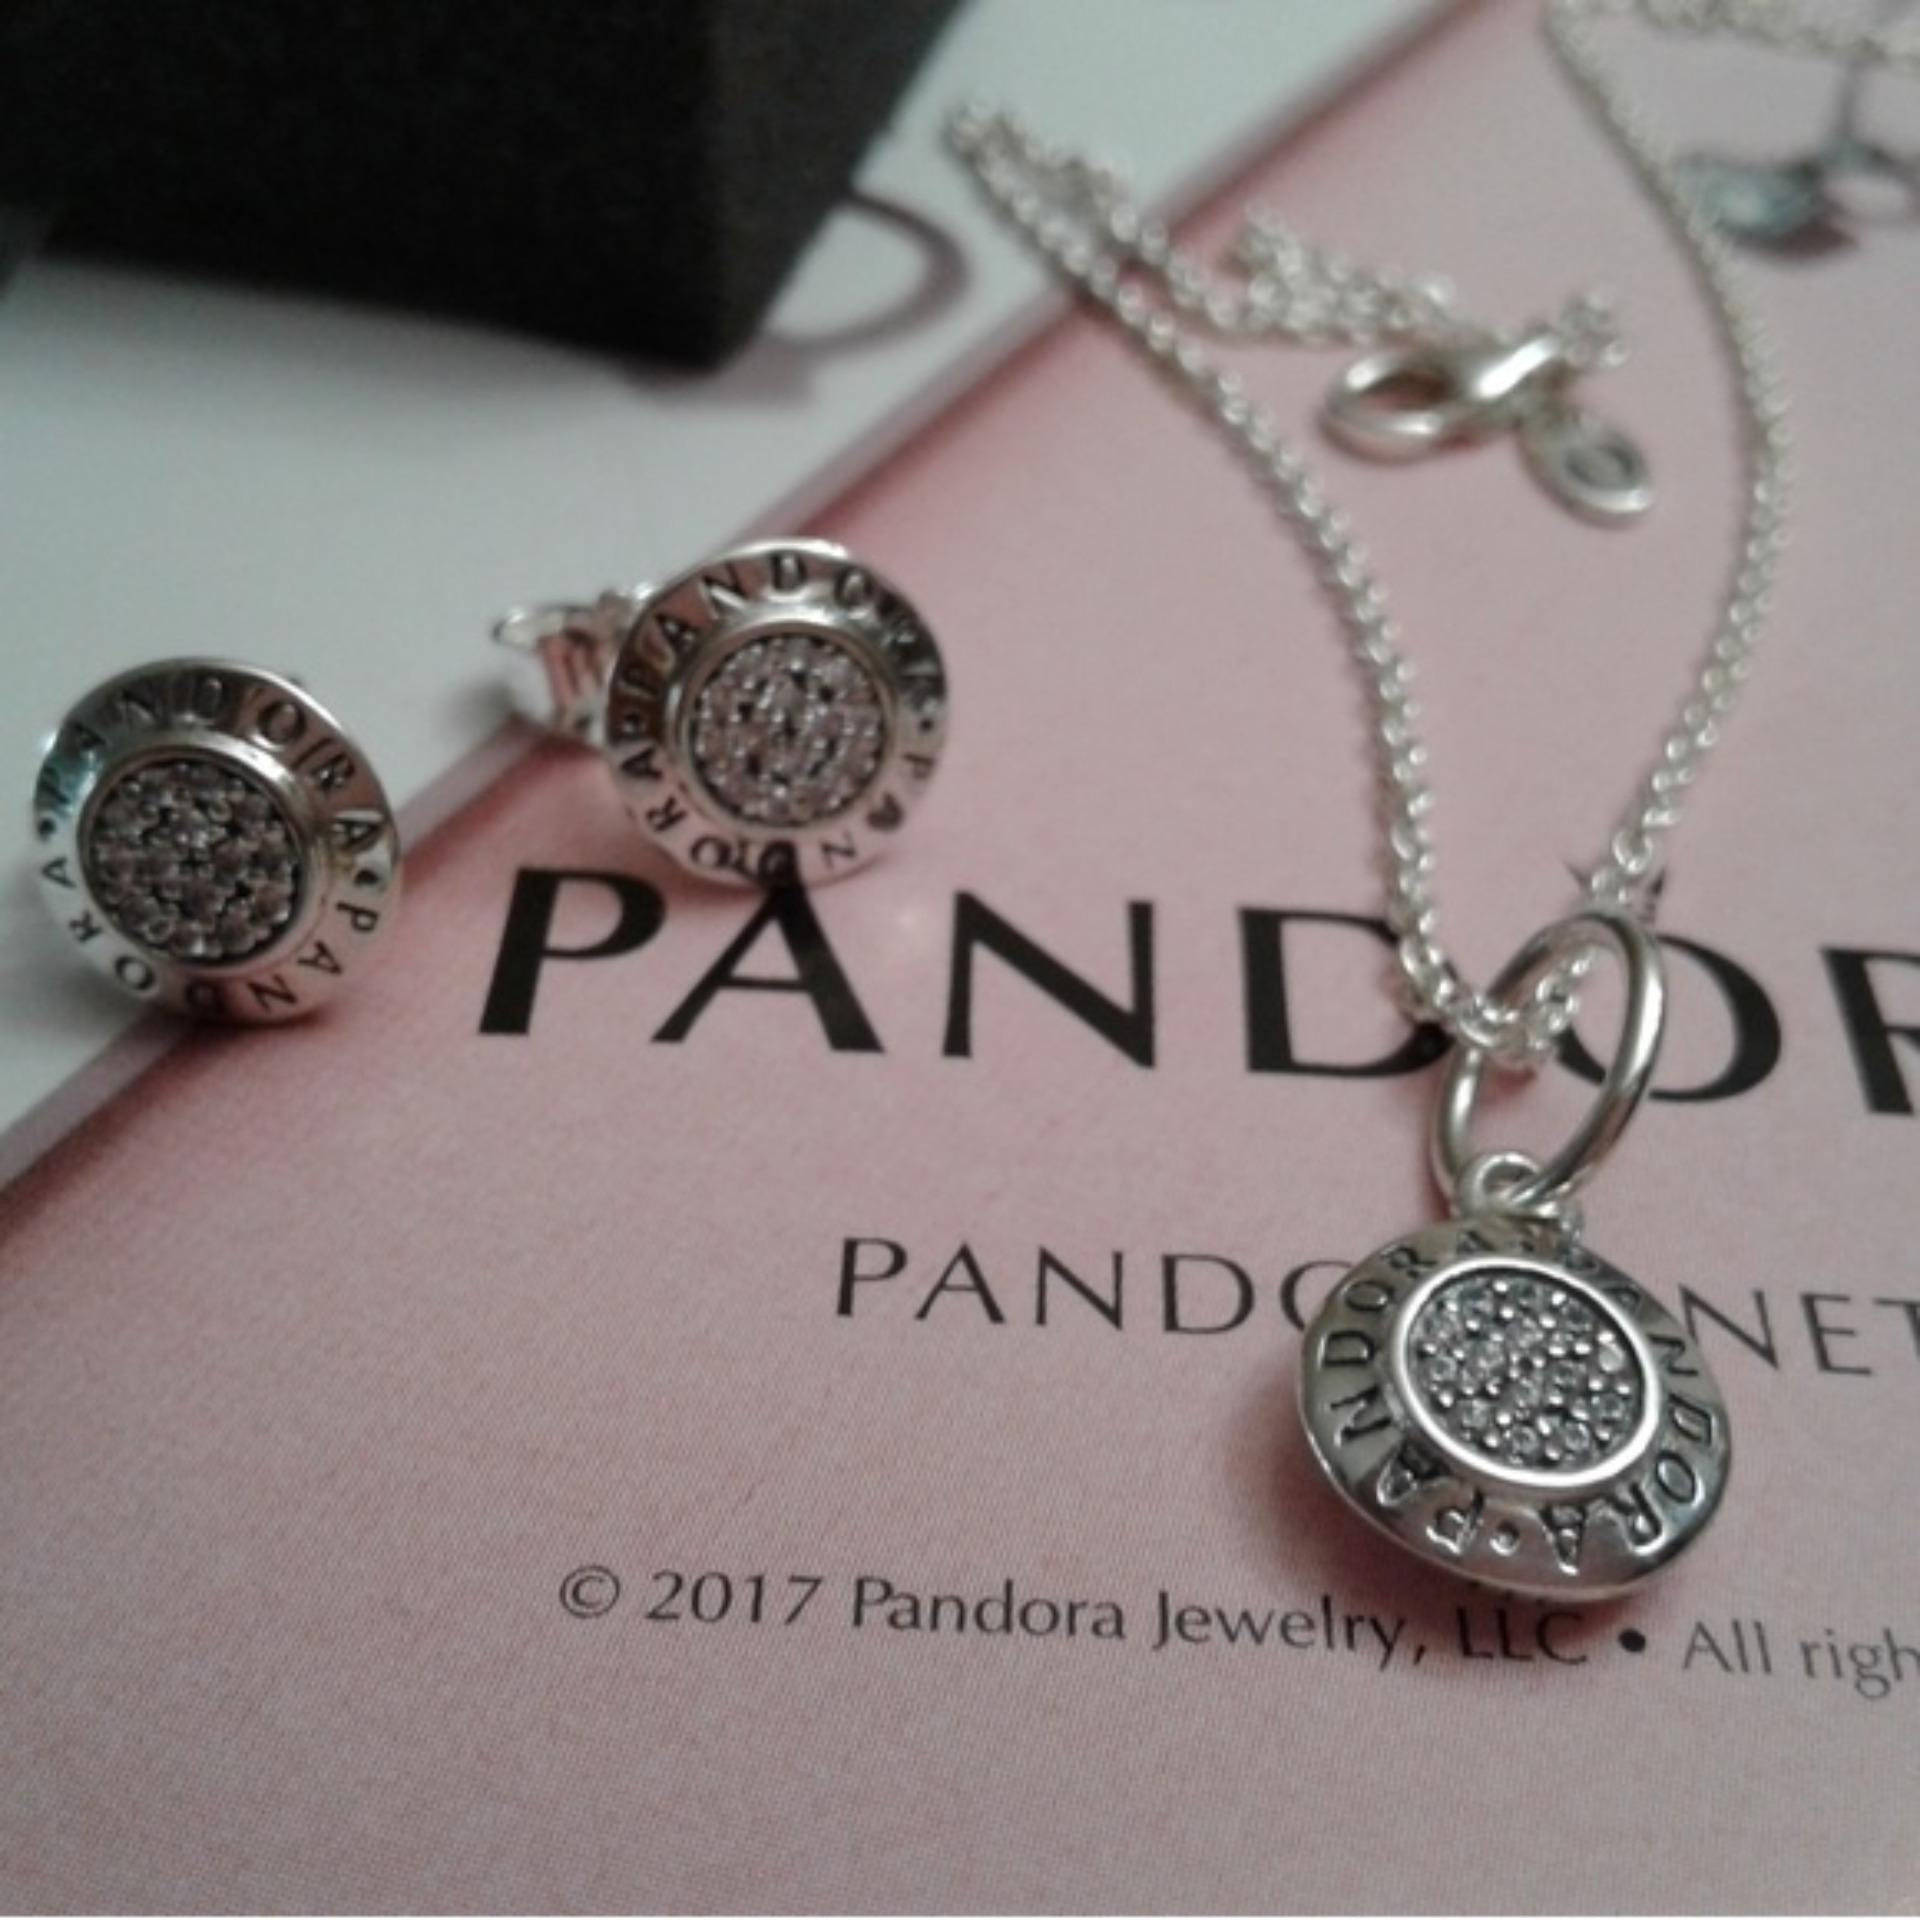 Pandora Necklace And Earrings Set Intended For 2019 Pandora Moments Small O Pendant Necklaces (View 13 of 25)